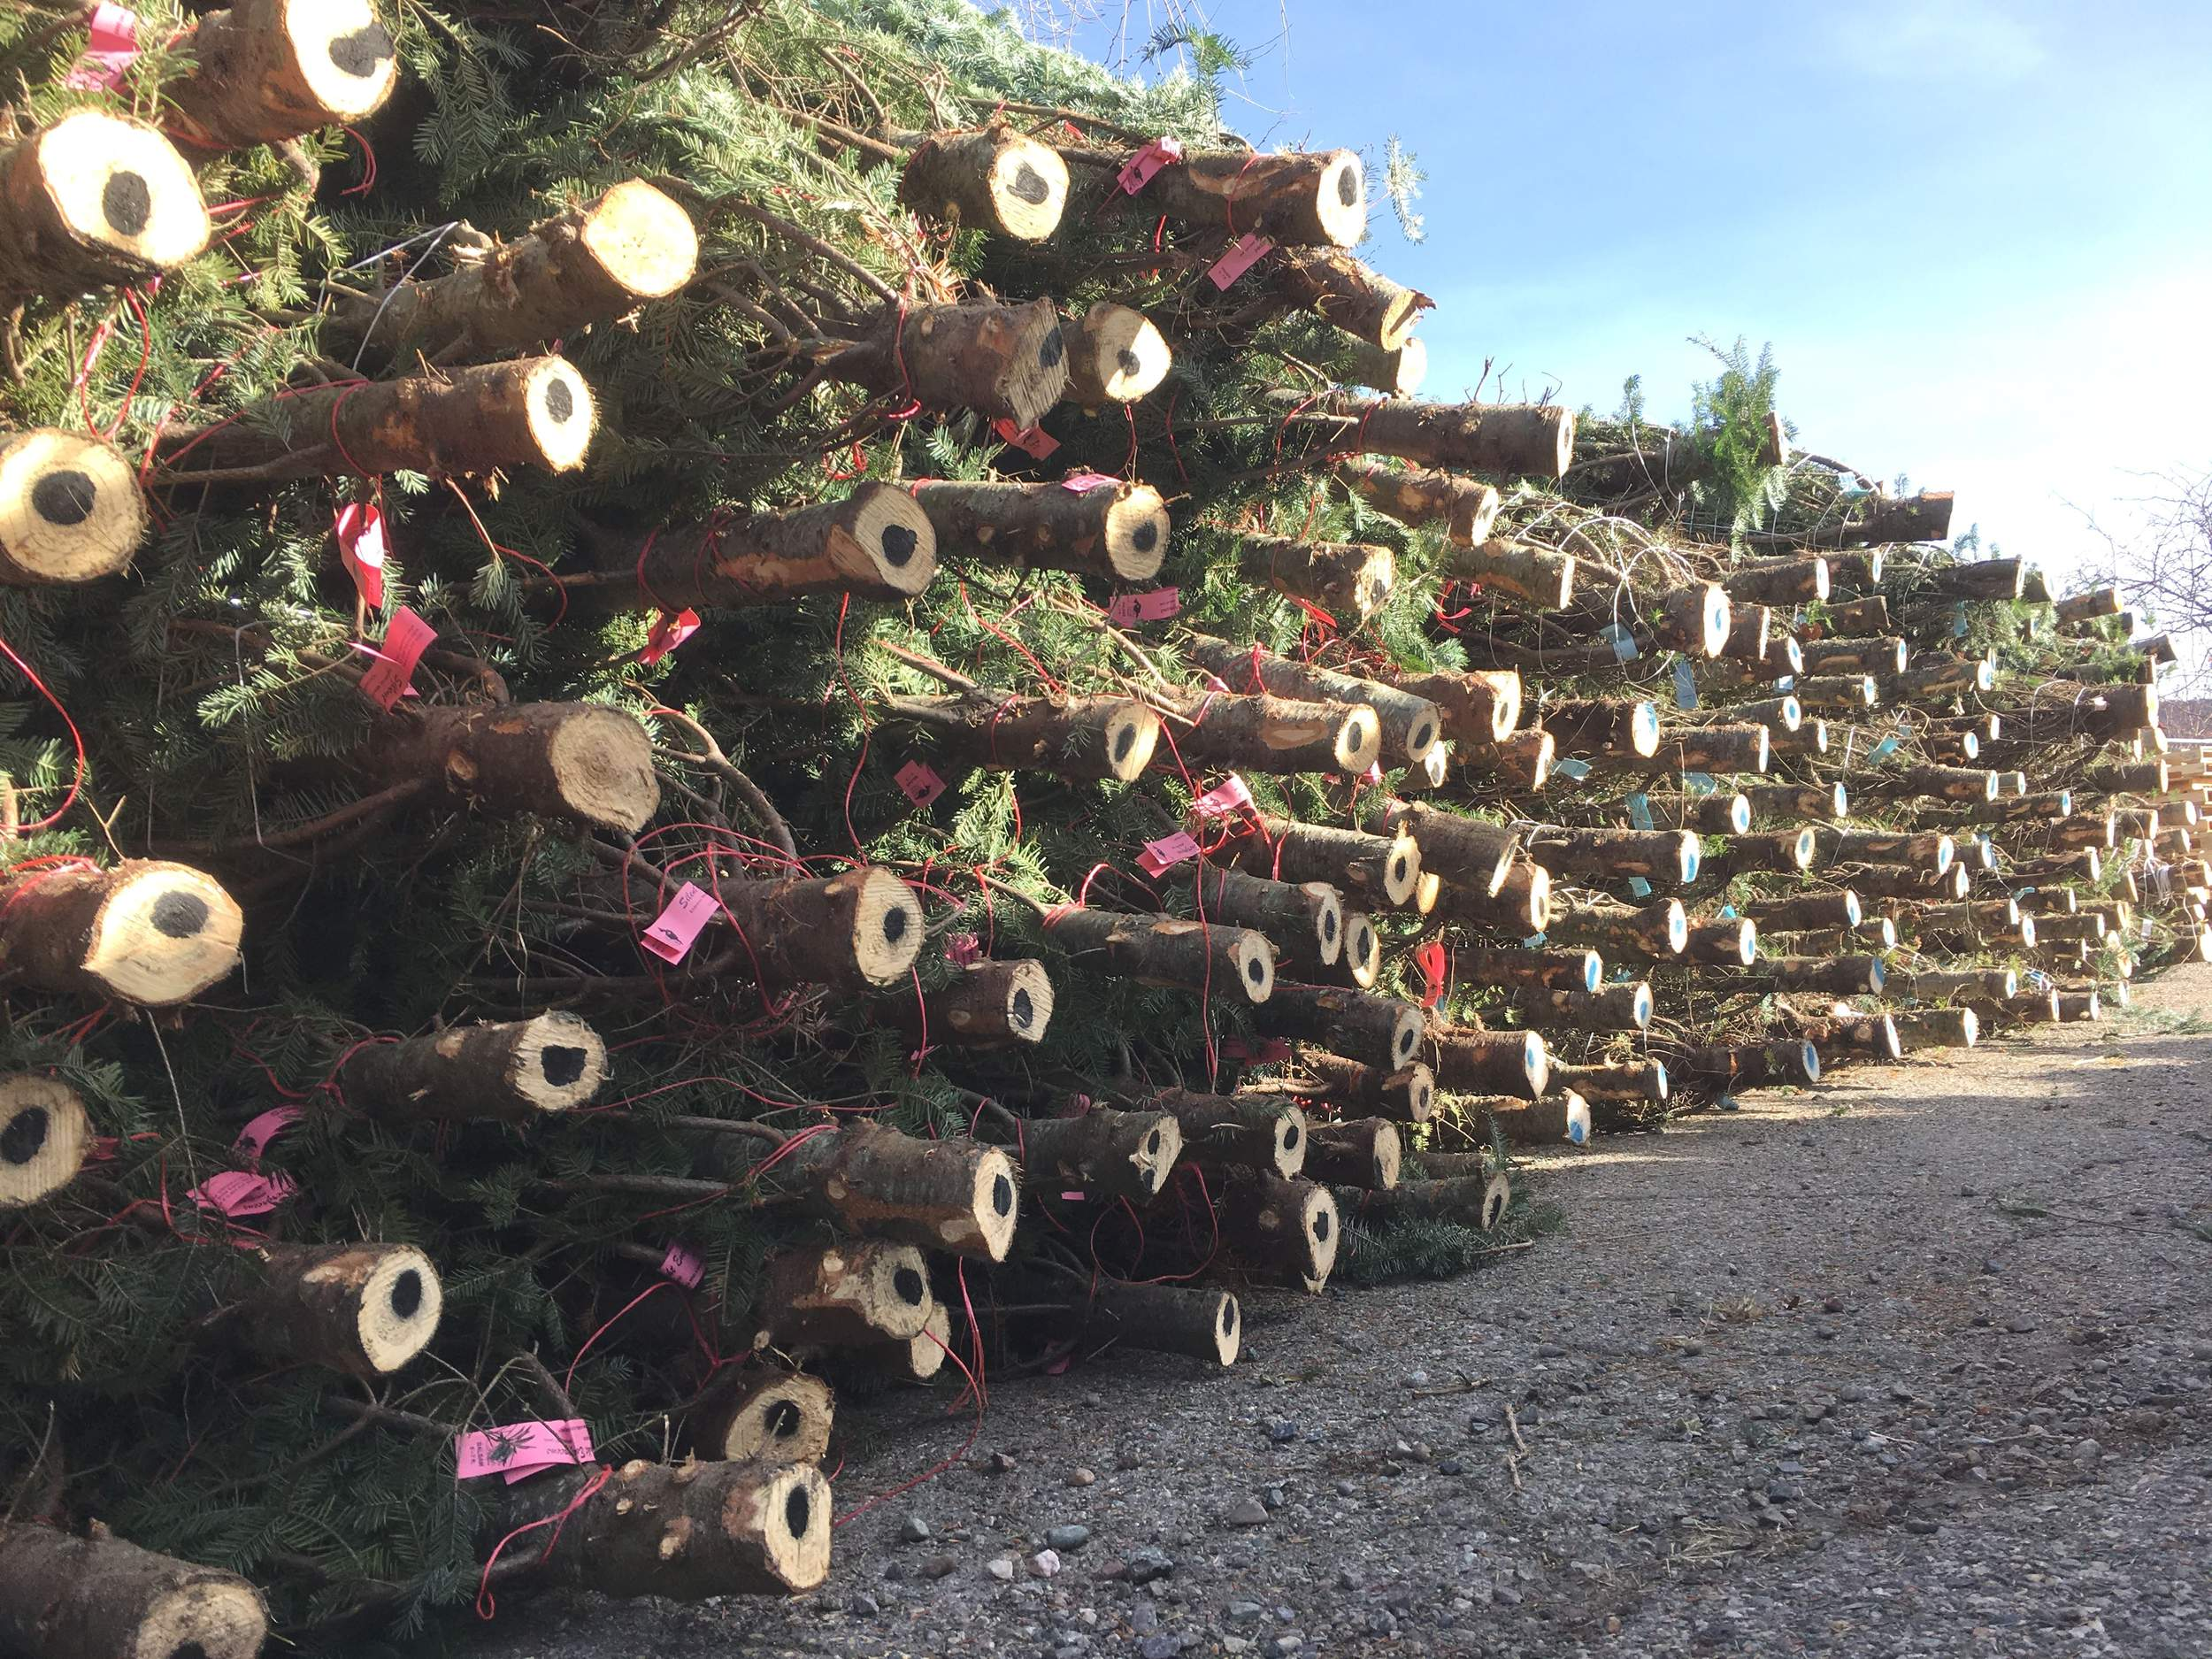 san juan mountains association received a delivery of christmas trees monday in the train parking lot near camino del rio and main avenue in durango - Cheap Real Christmas Trees For Sale